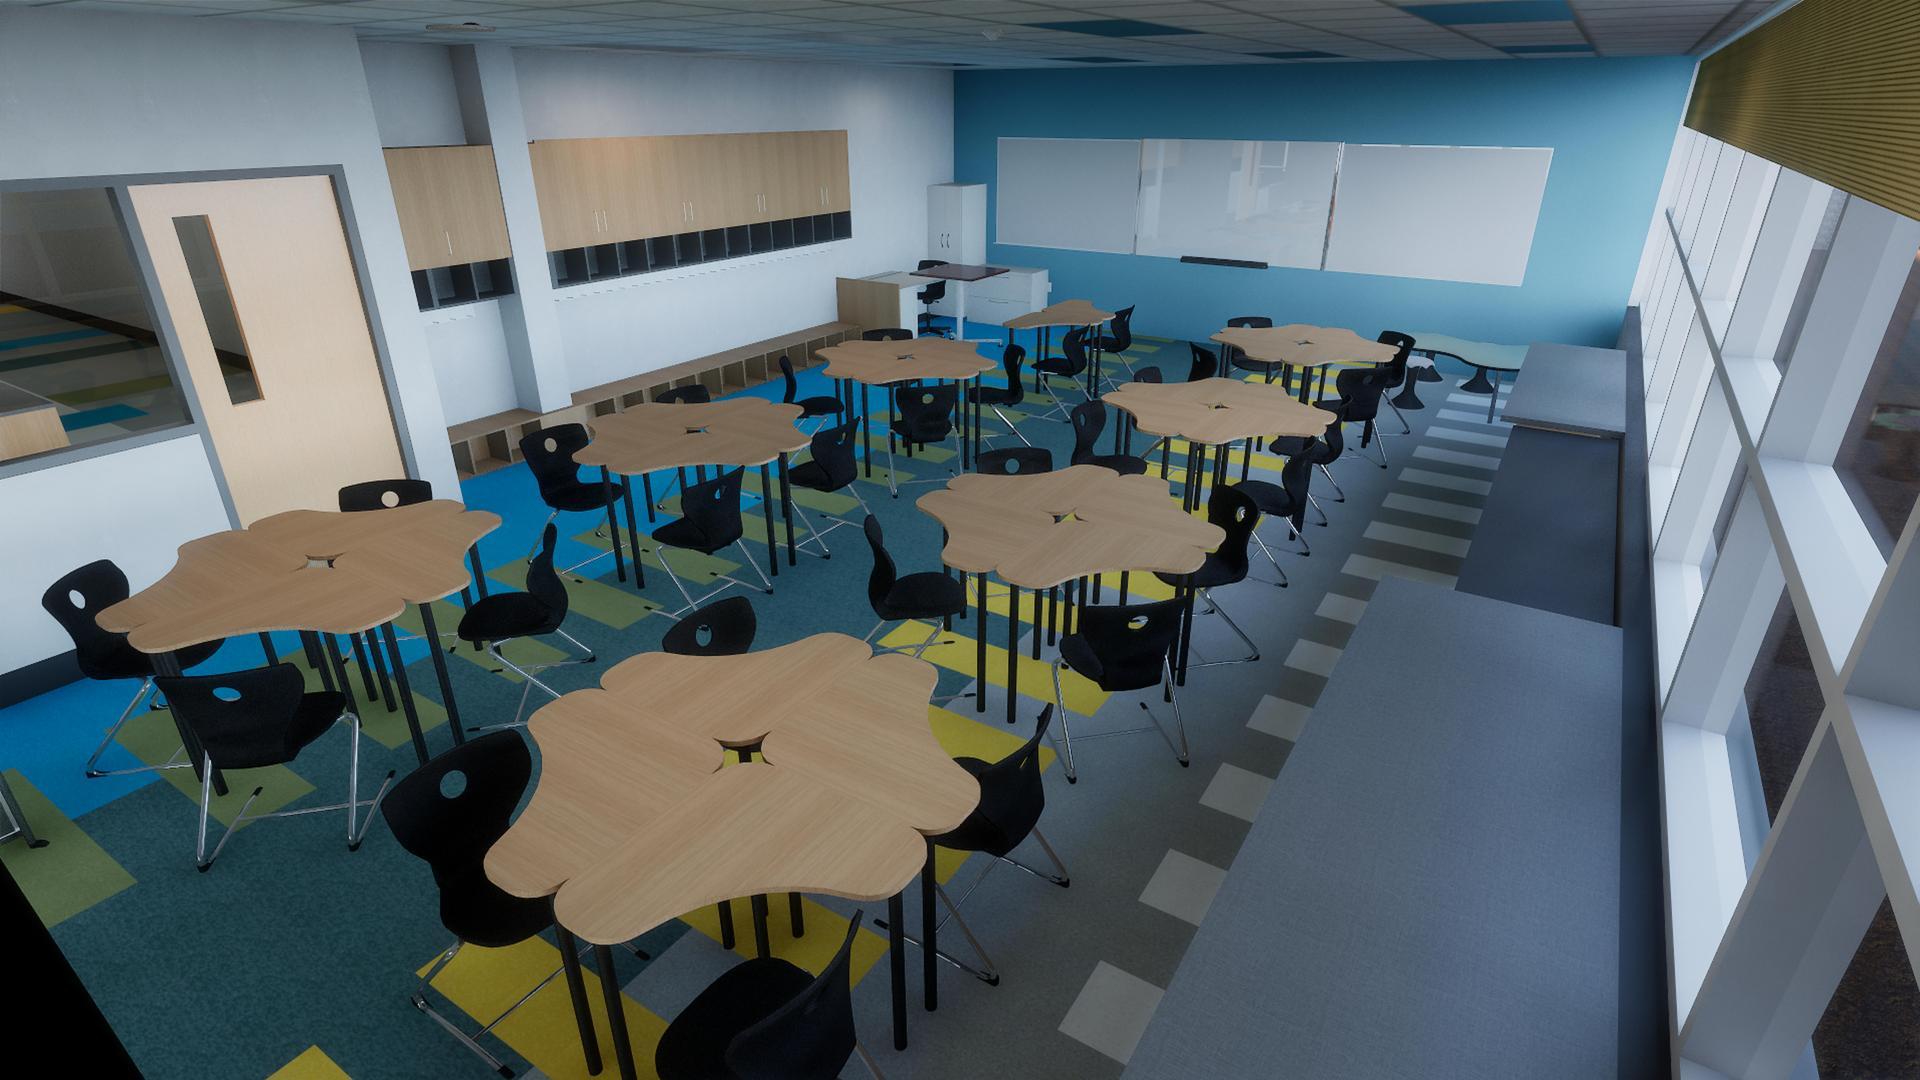 Concept photo of Classroom (front view)